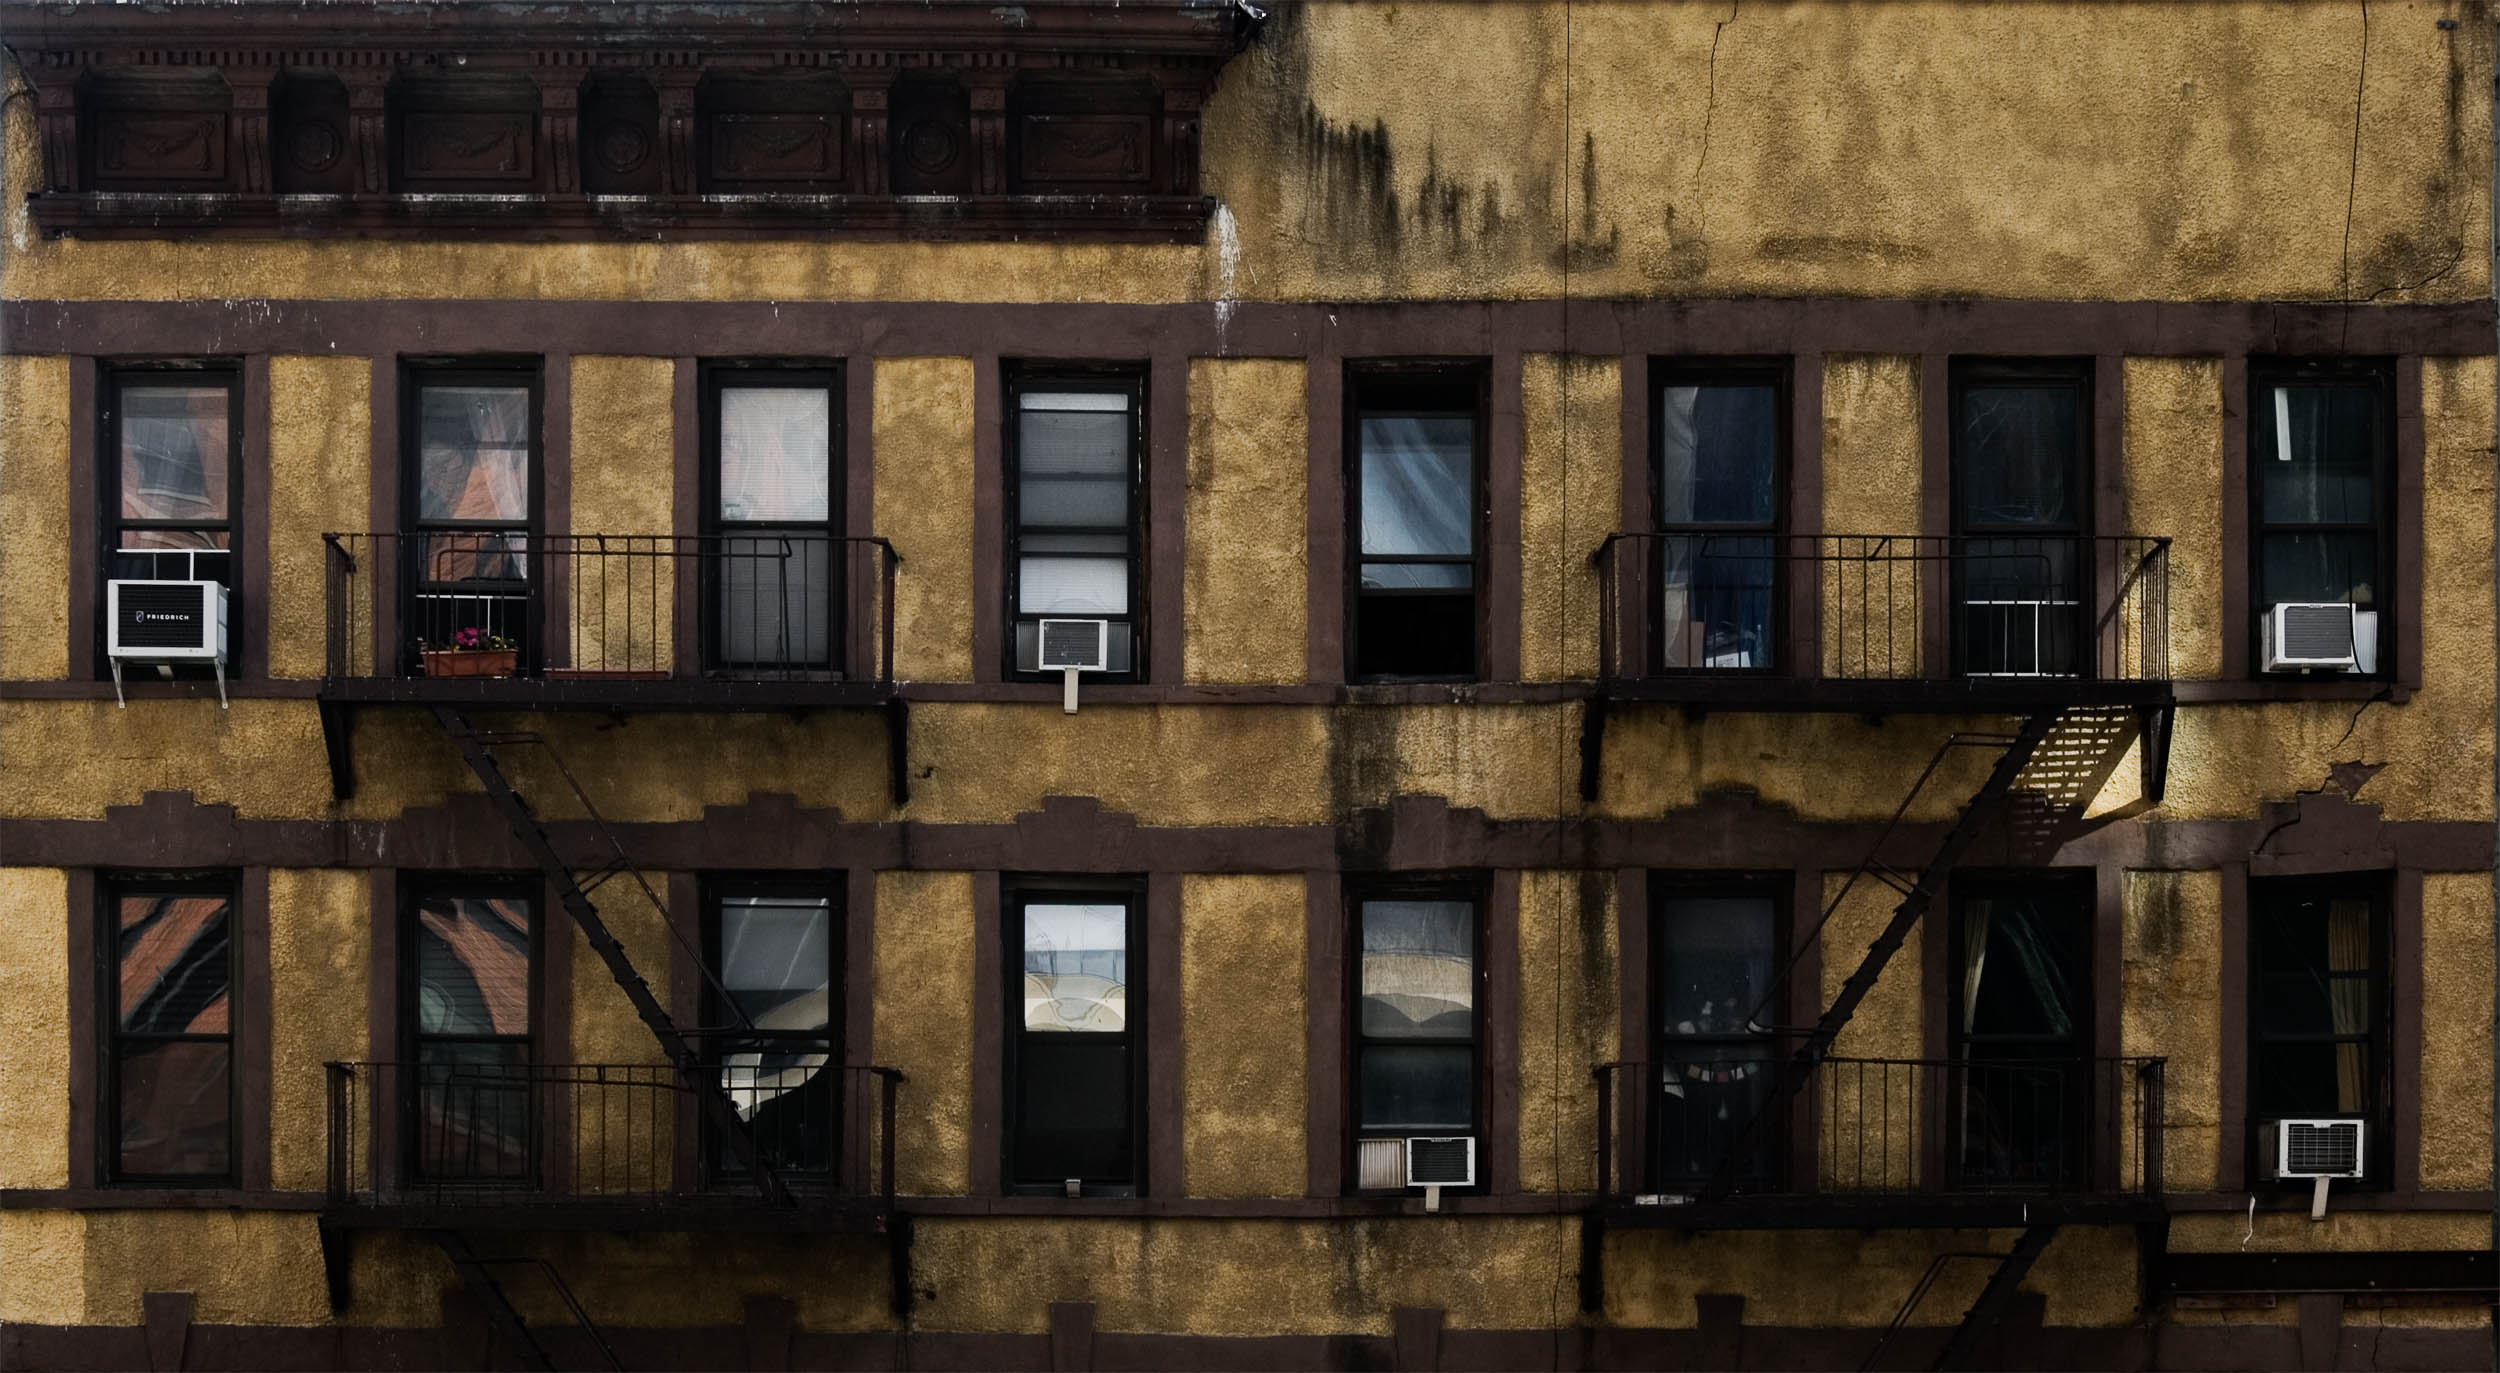 Finally, I am slowing getting to some of the photos from New York. This is a view of the windows and fire escapes on a W 29th St. apartment building from the High Line in New York.